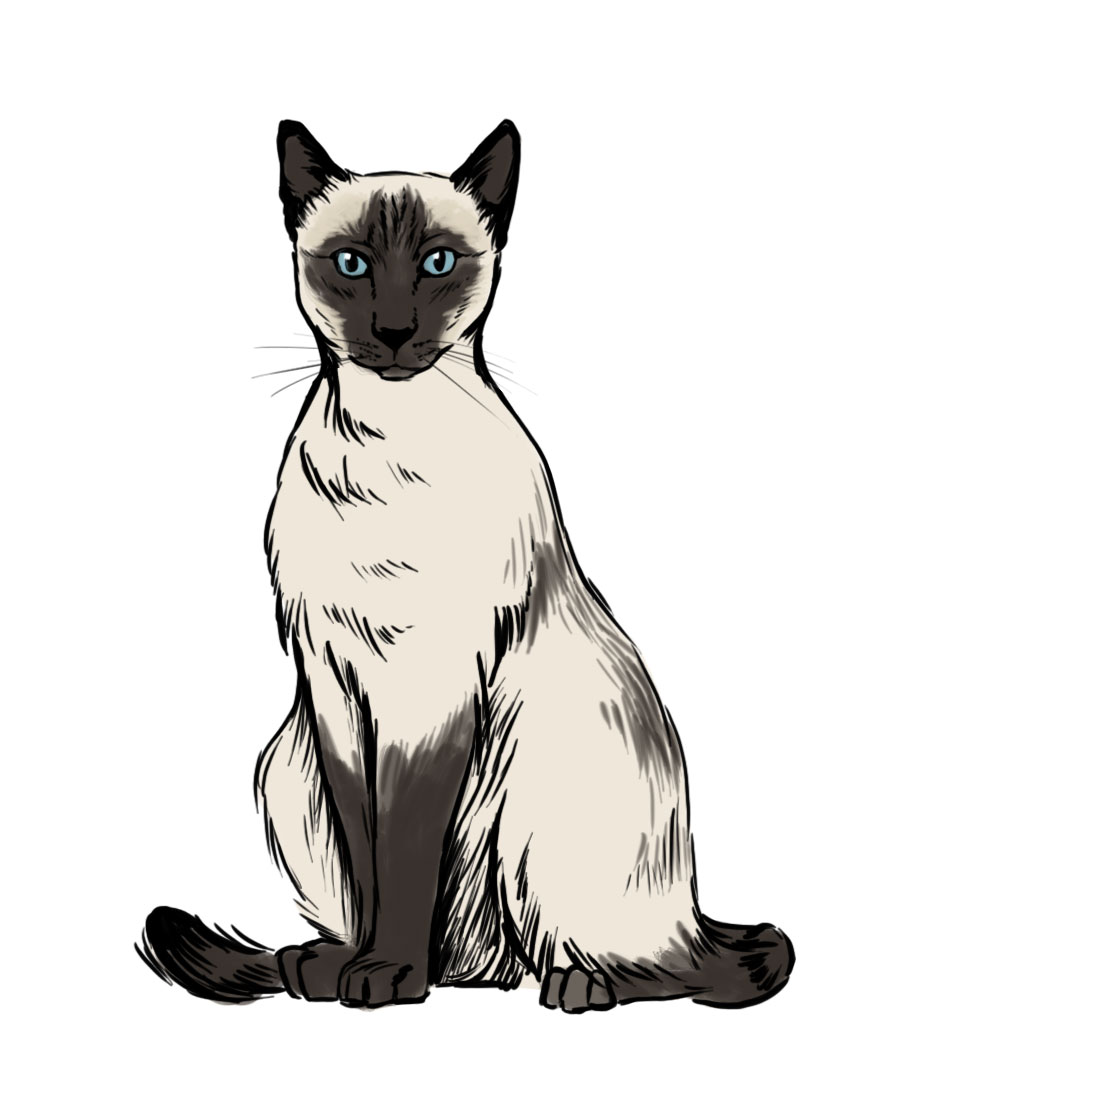 1100x1100 How To Draw A Siamese Cat 7 Steps (With Pictures)